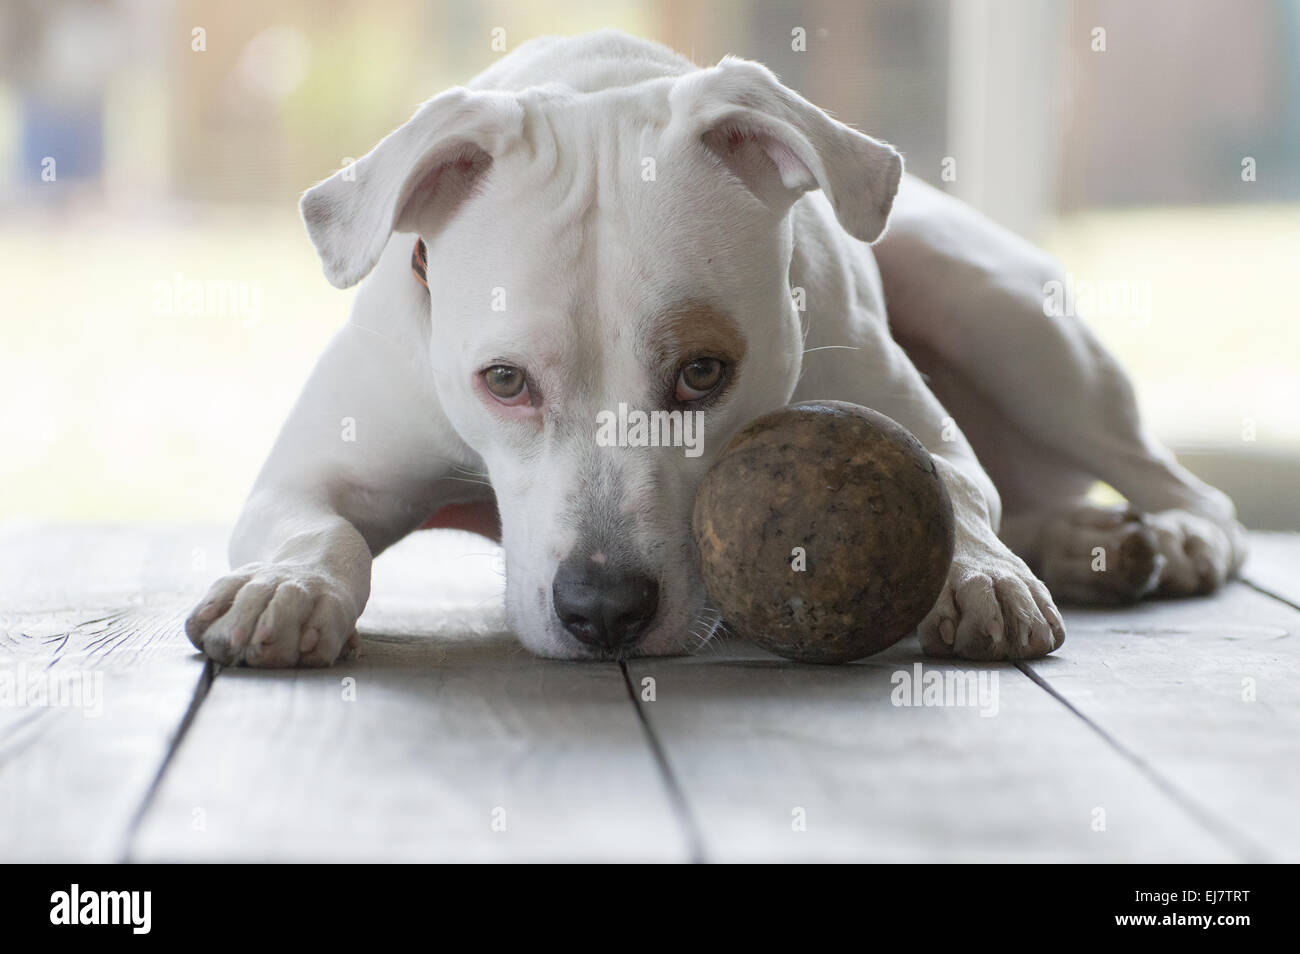 Family dog waiting for someone to play ball with her. In the meantime she waits patiently. - Stock Image